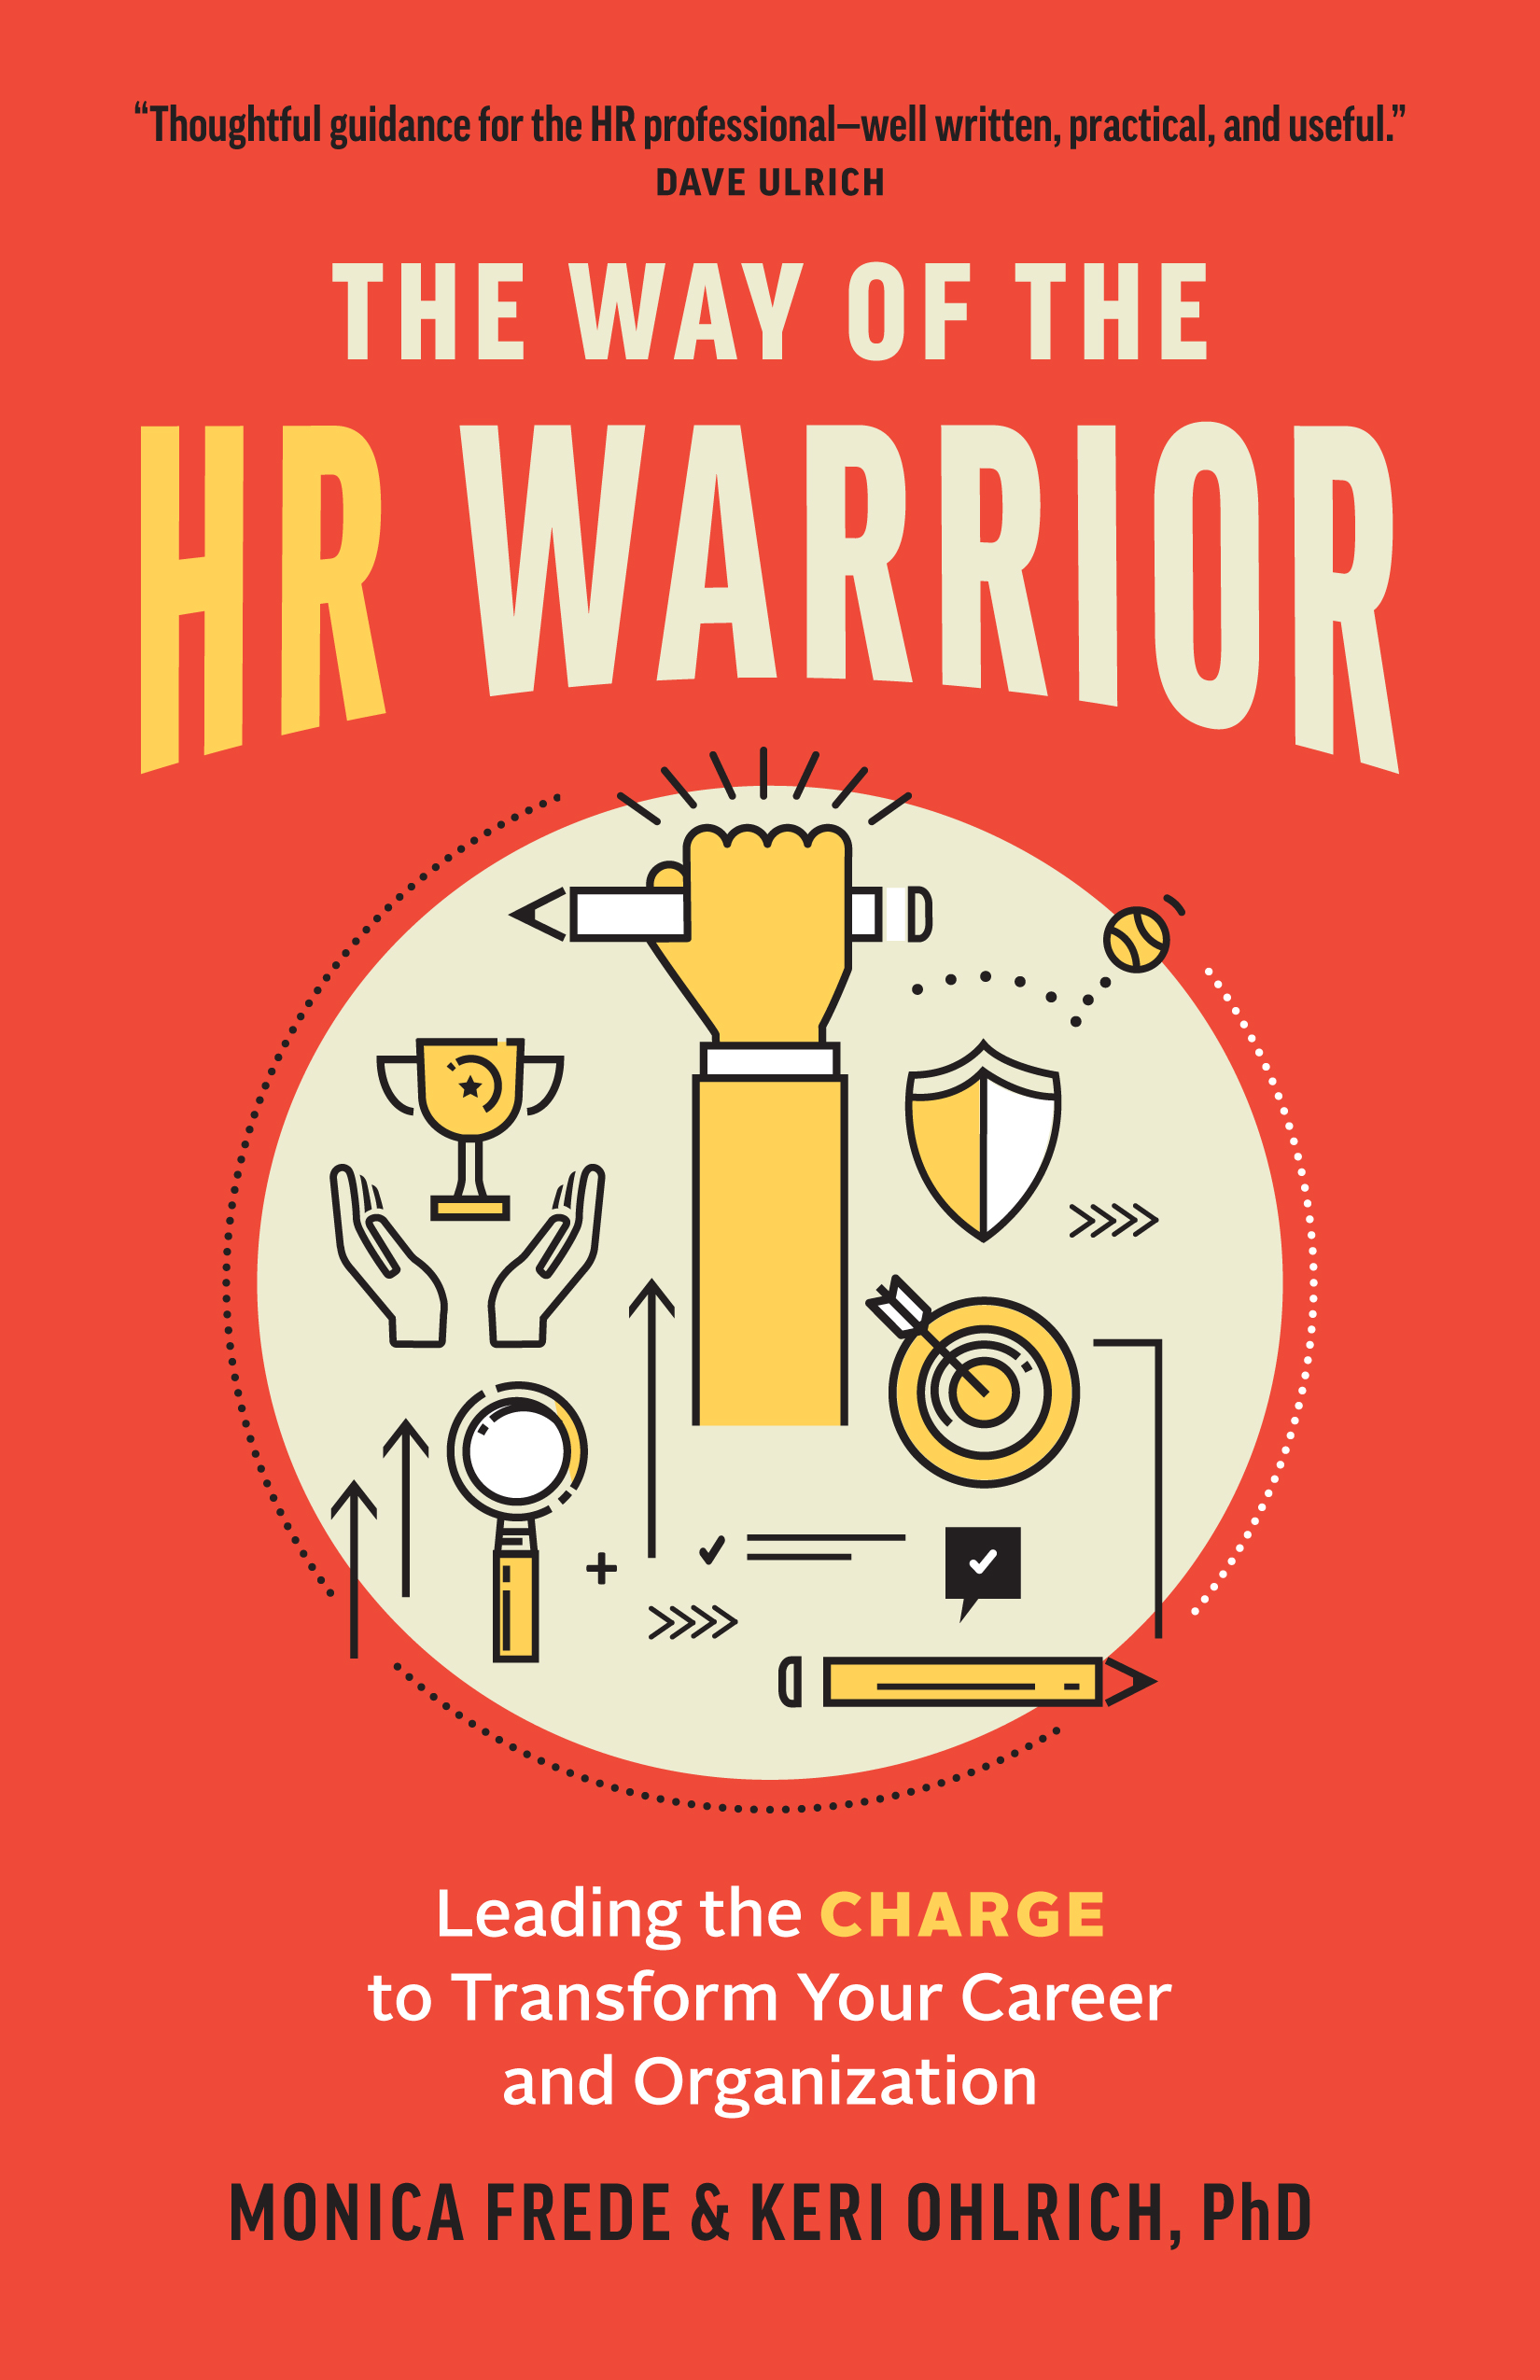 The Way of the HR Warrior